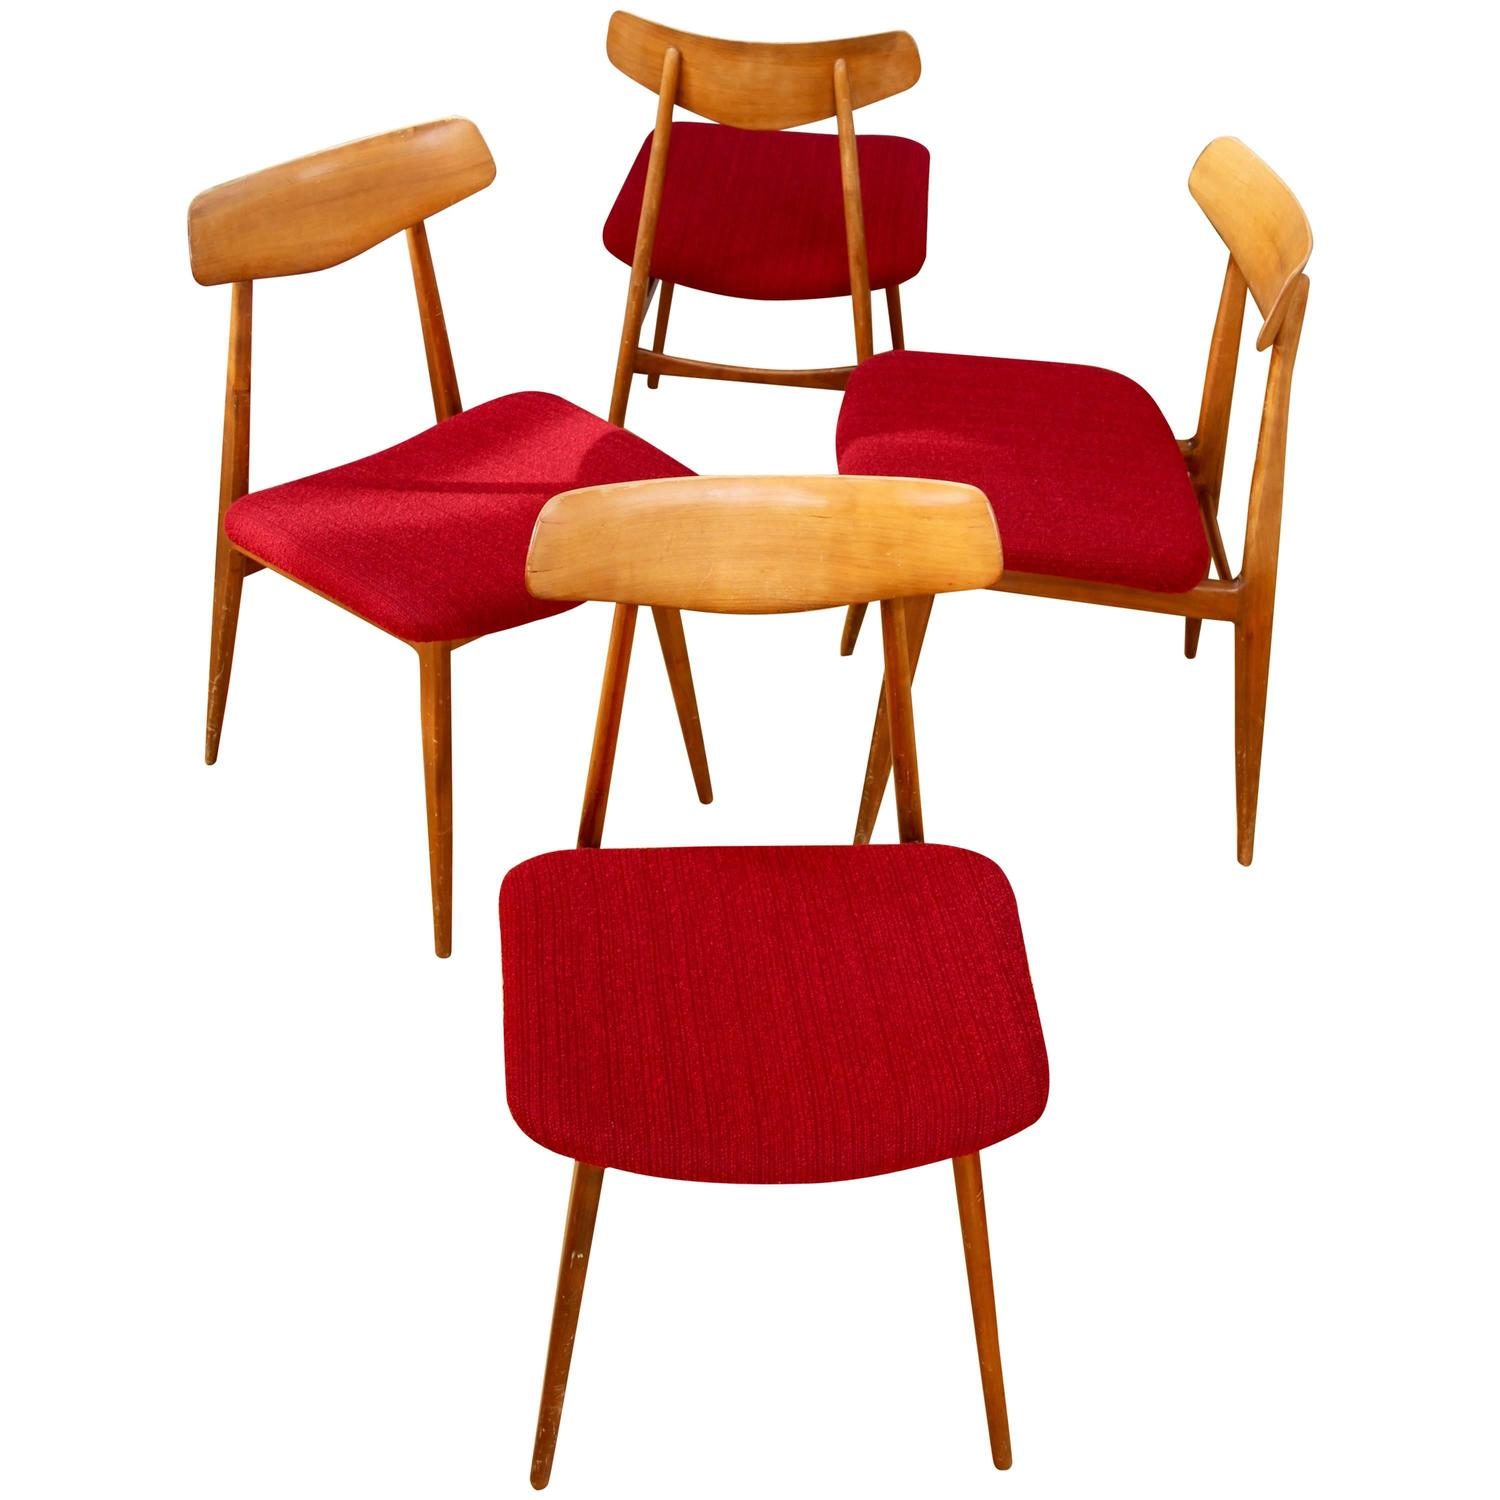 Hans wegner style set of four mid century dining chairs by for Wegner dining chair